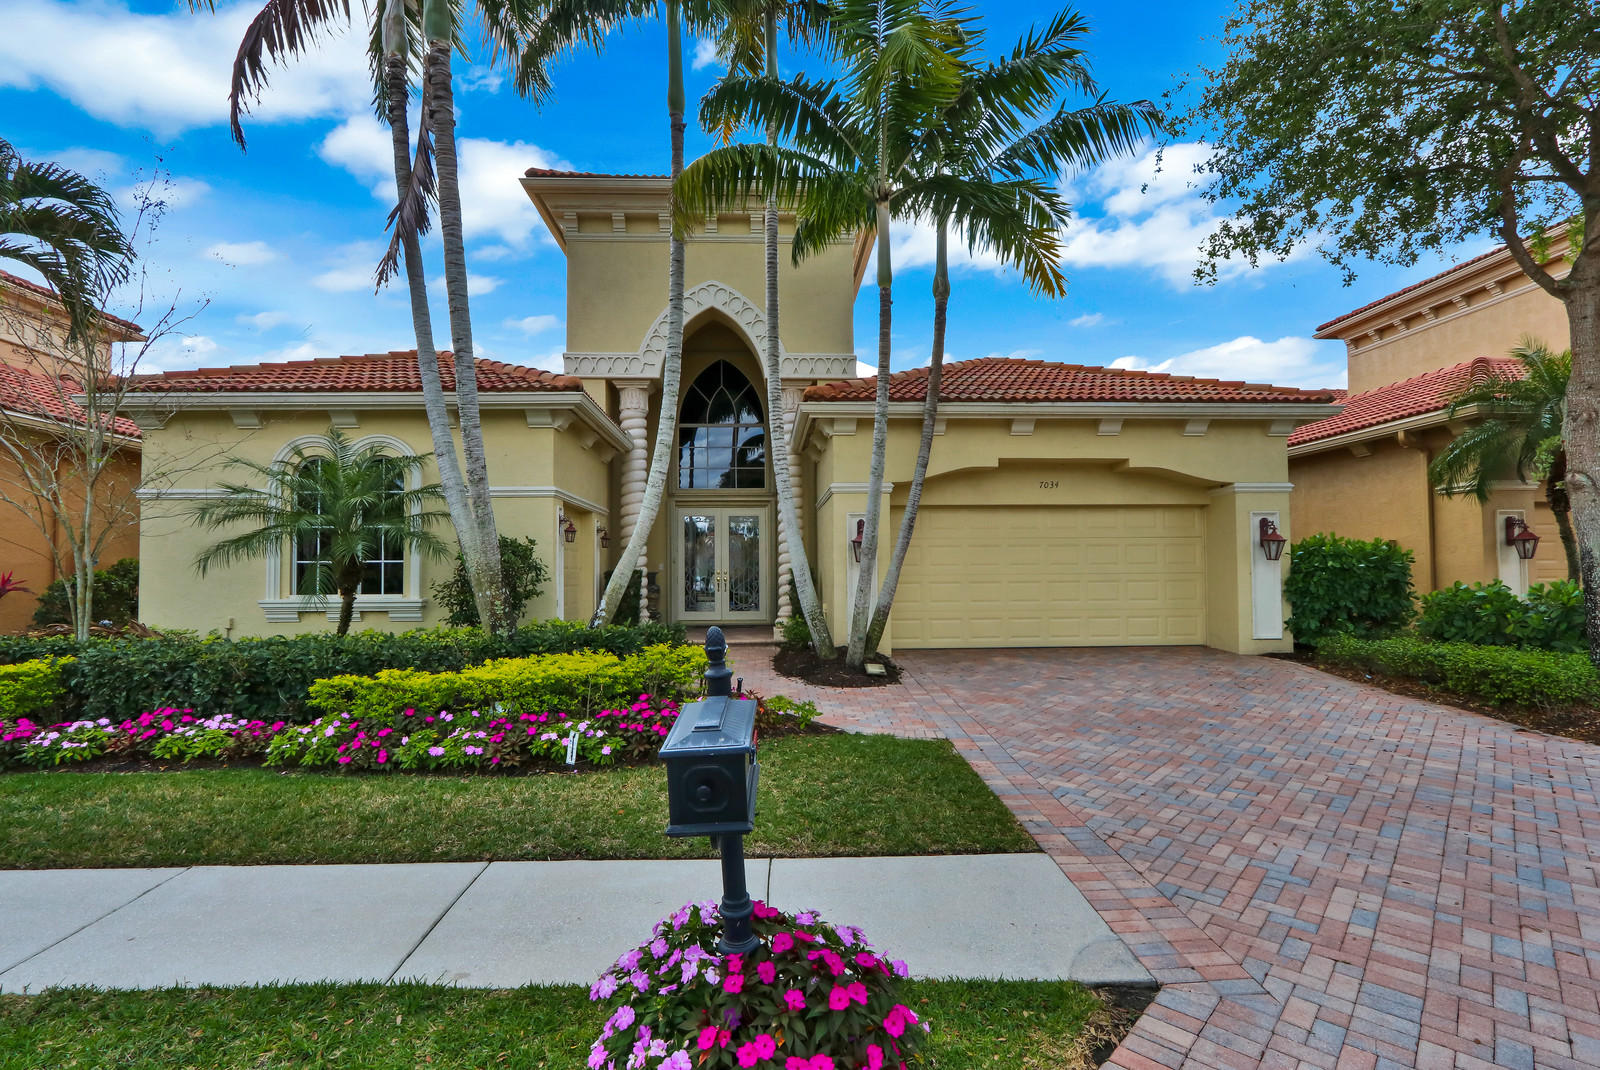 Home for sale in Ibis-tradition Cove West Palm Beach Florida